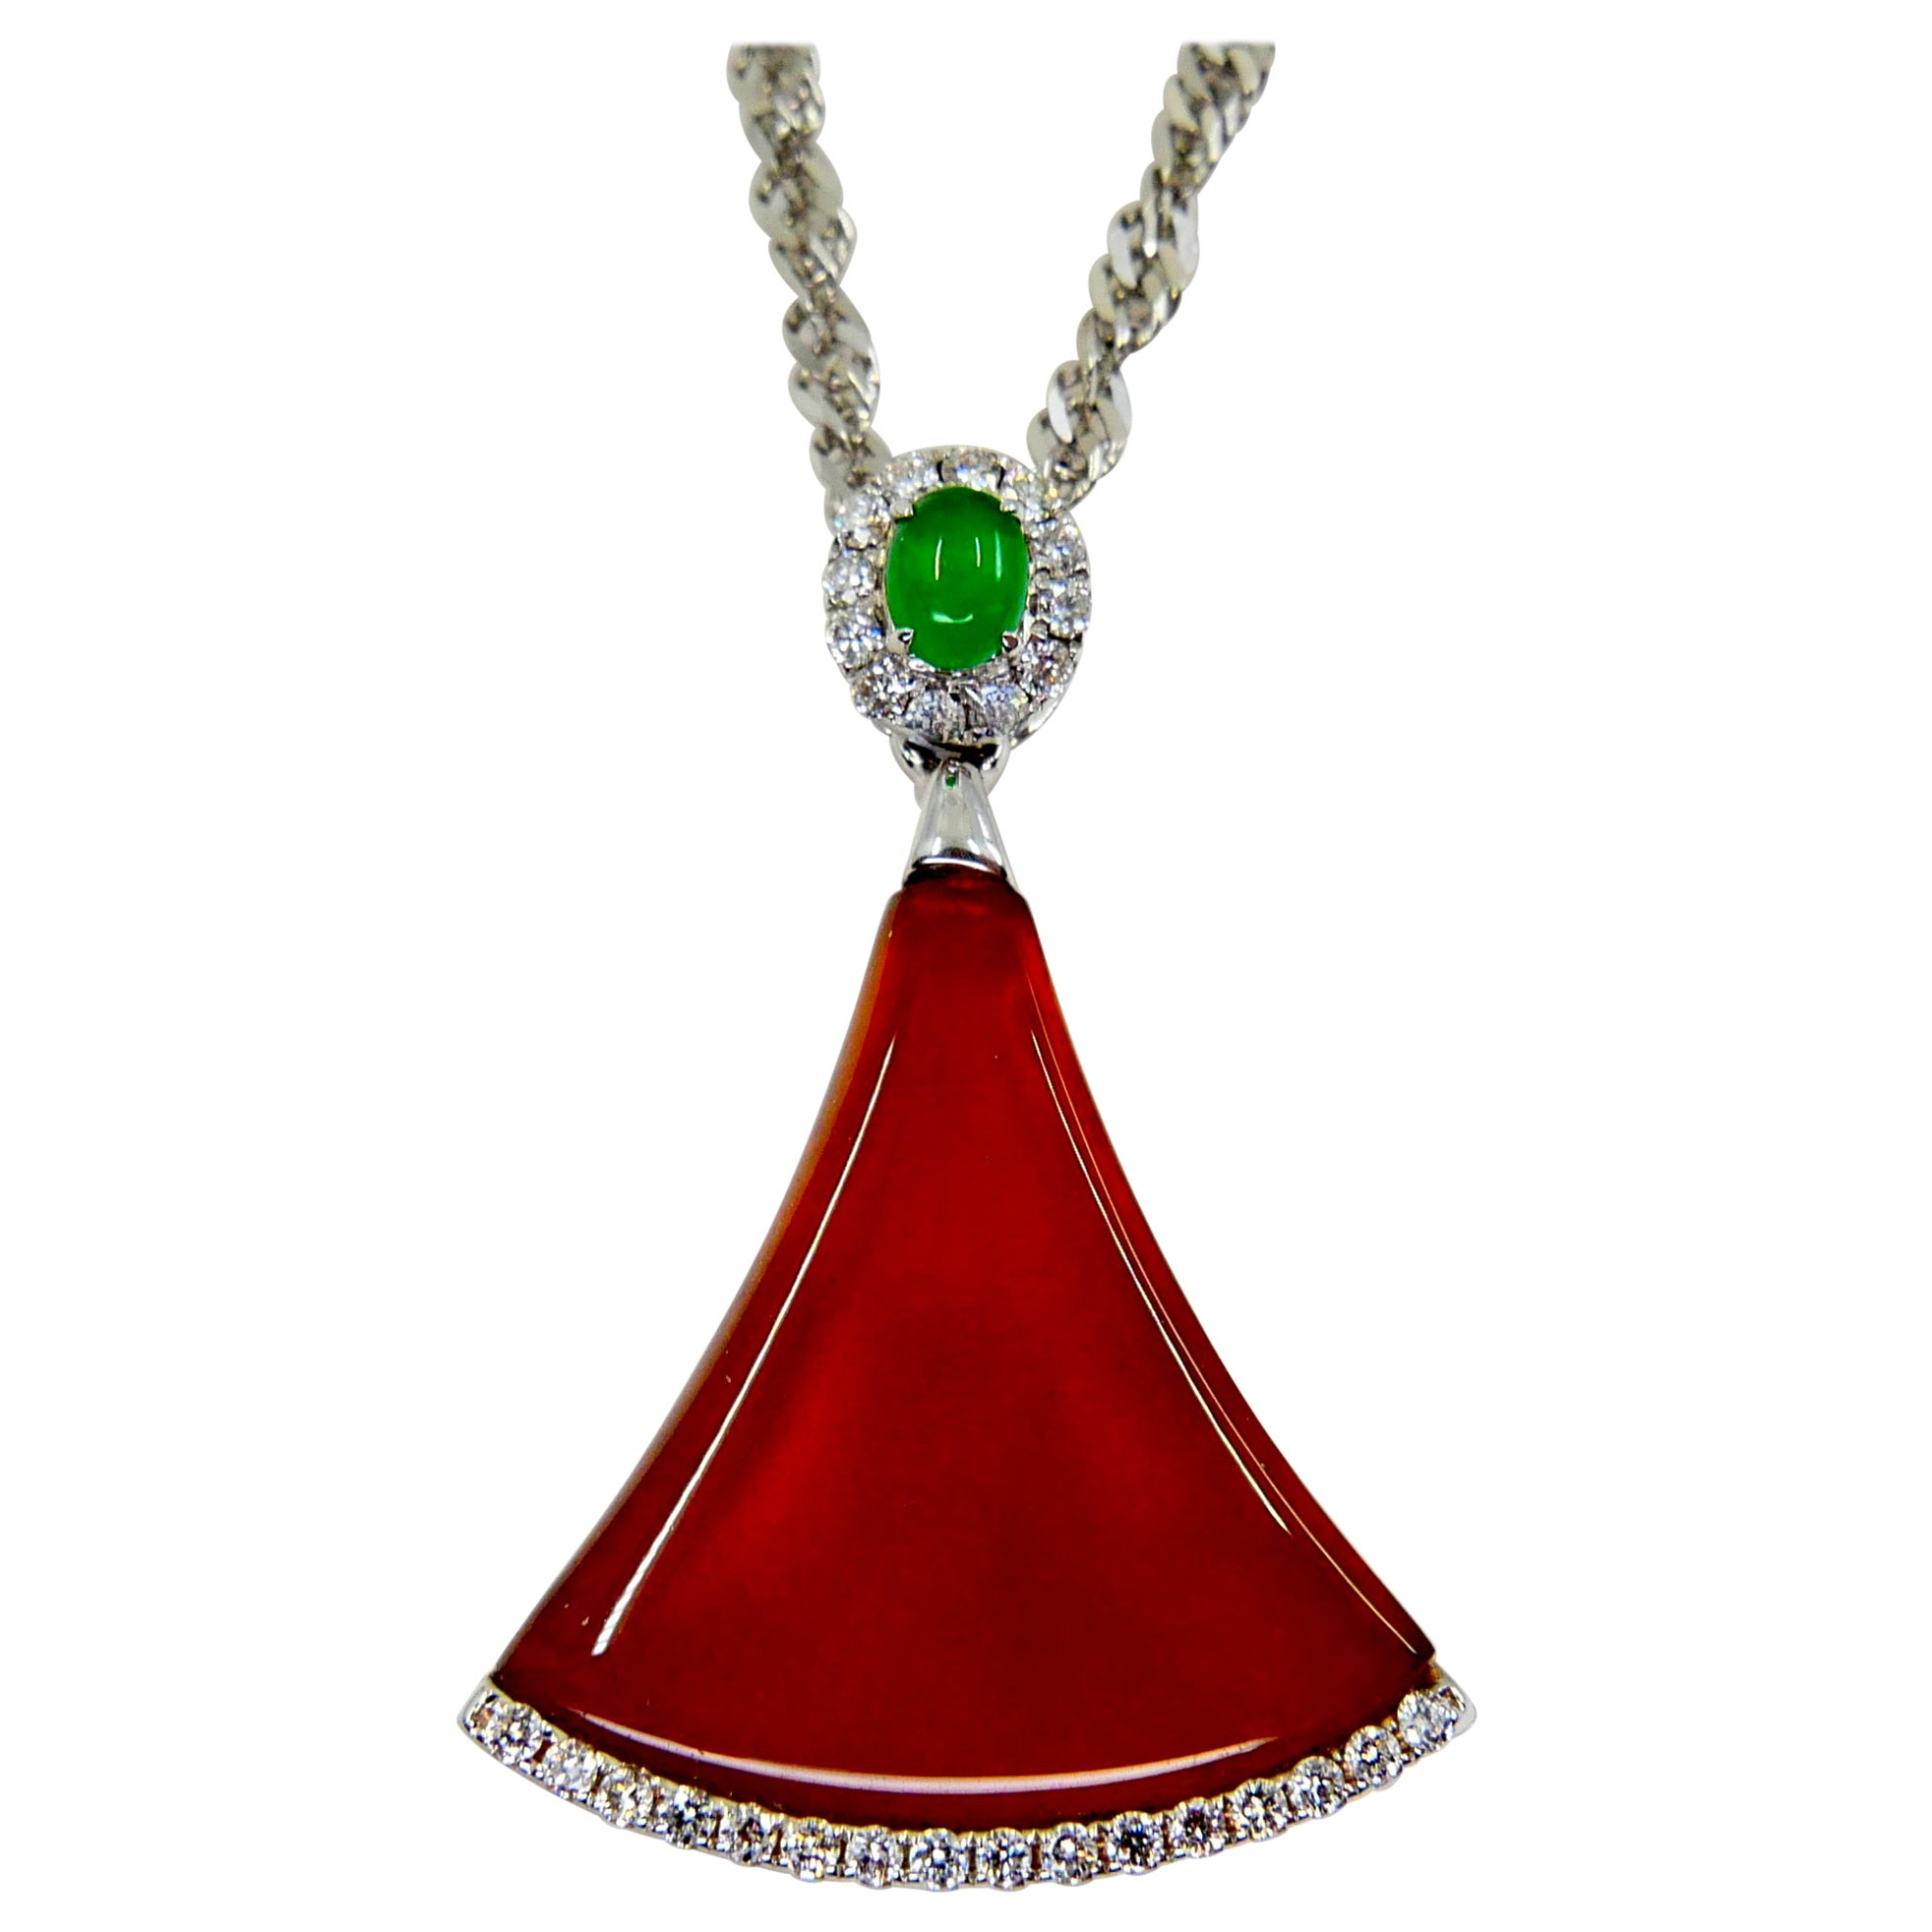 Certified Natural Icy Apple Green, Icy Red Jade & Diamond Pendant Drop Necklace